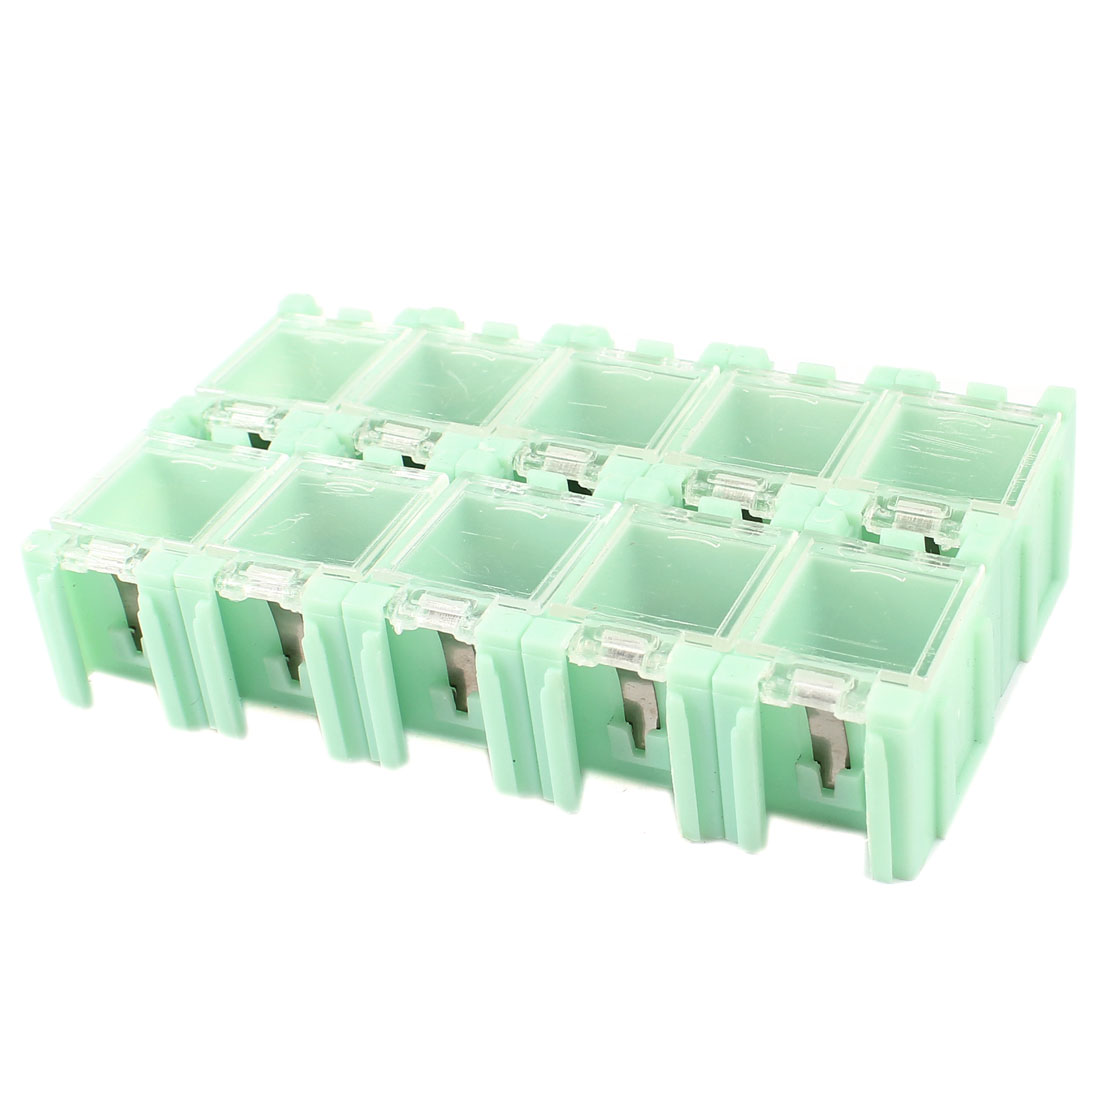 10Pcs Plastic Storage Box Electric Components Case Light Green